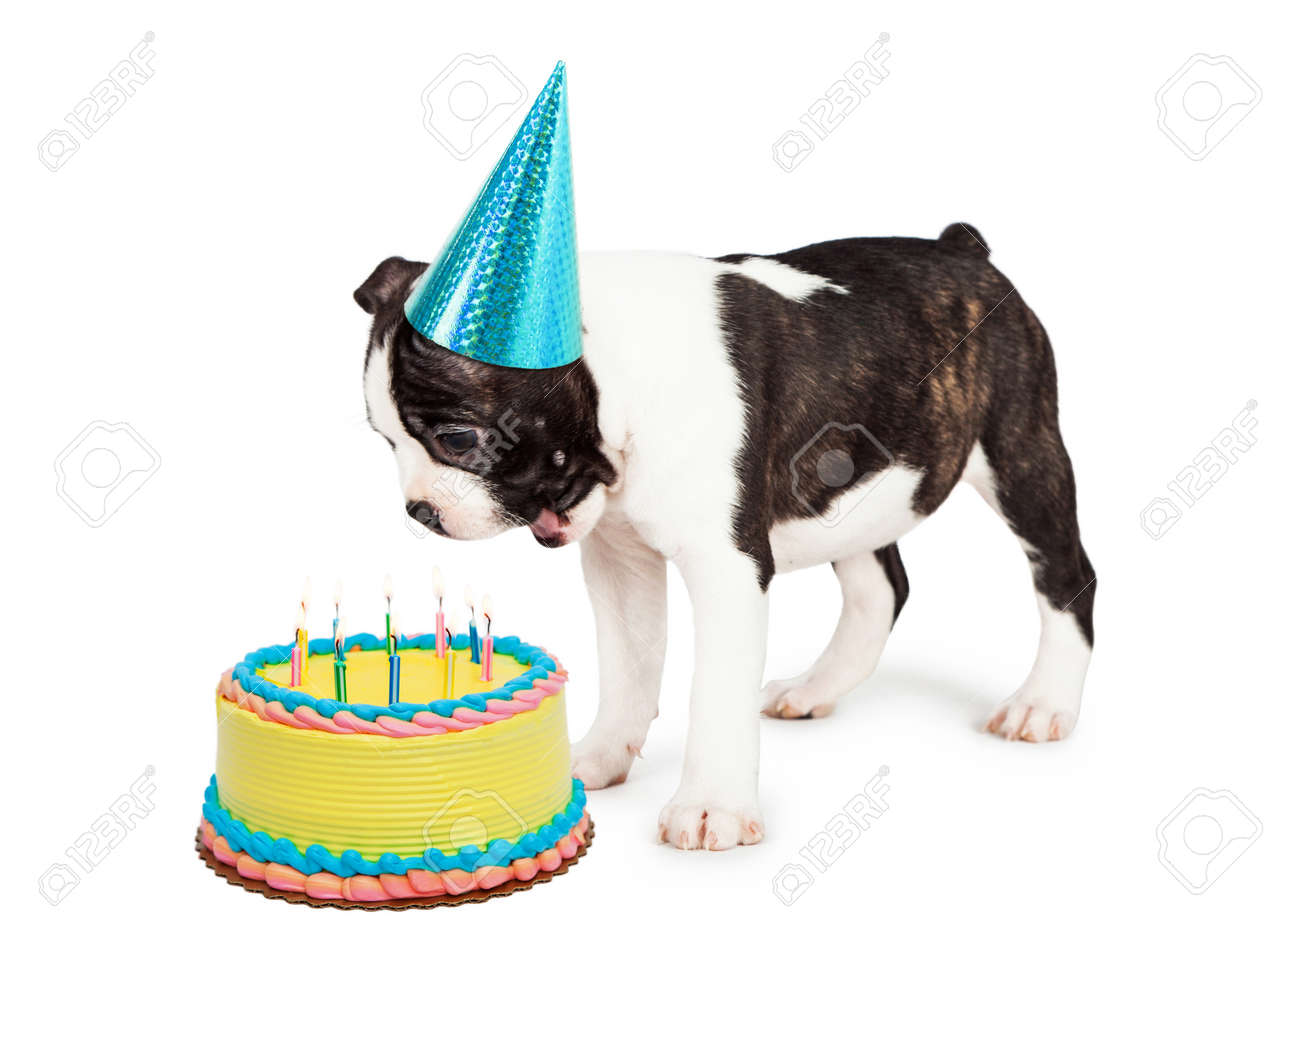 Funny Boston Terrier Puppy With A Happy And Surprised Expression Looking Down At Birthday Cake